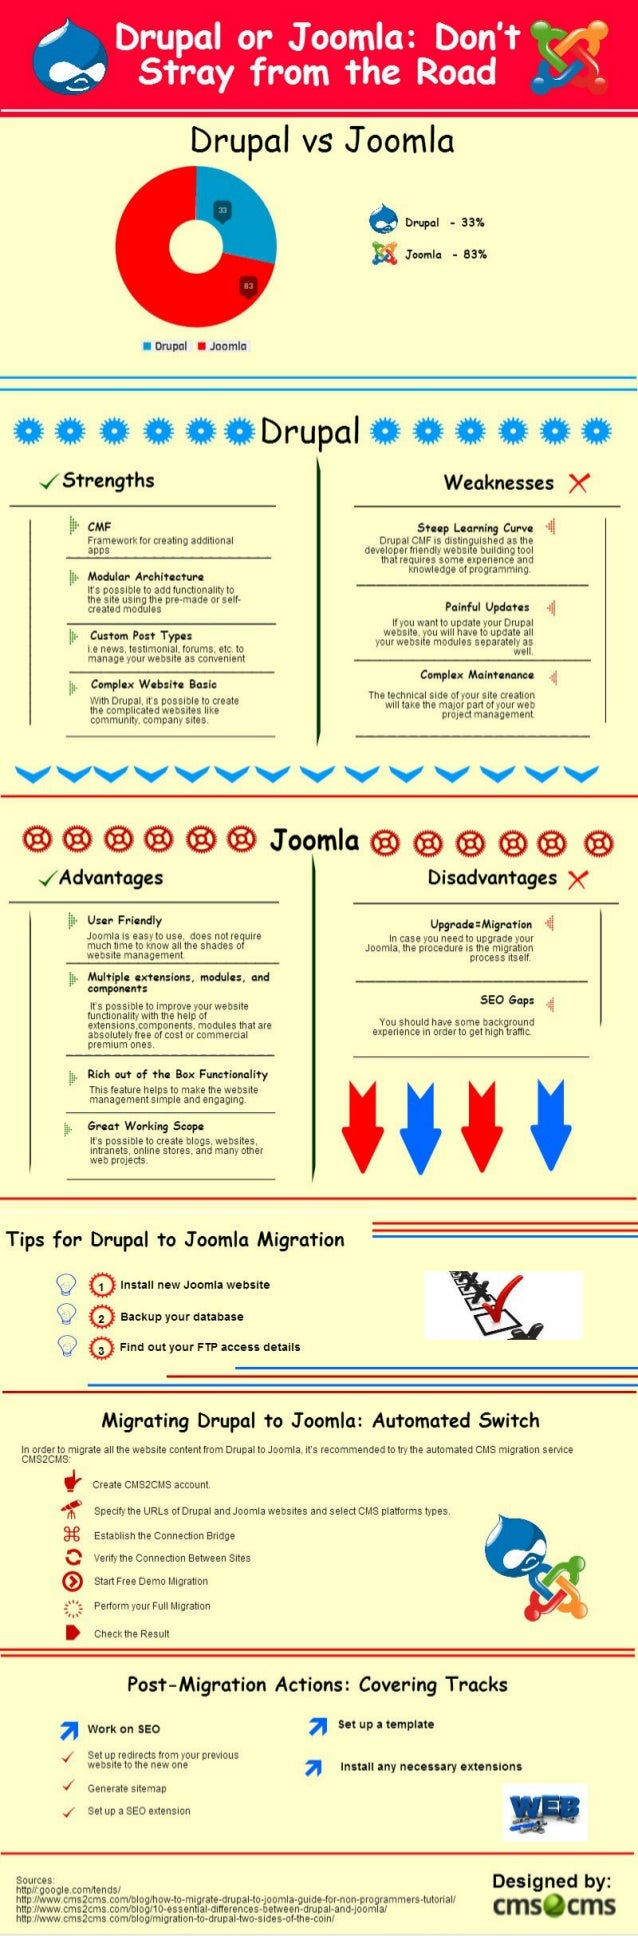 The Way and the Reasons to Switch from Drupal to Joomla